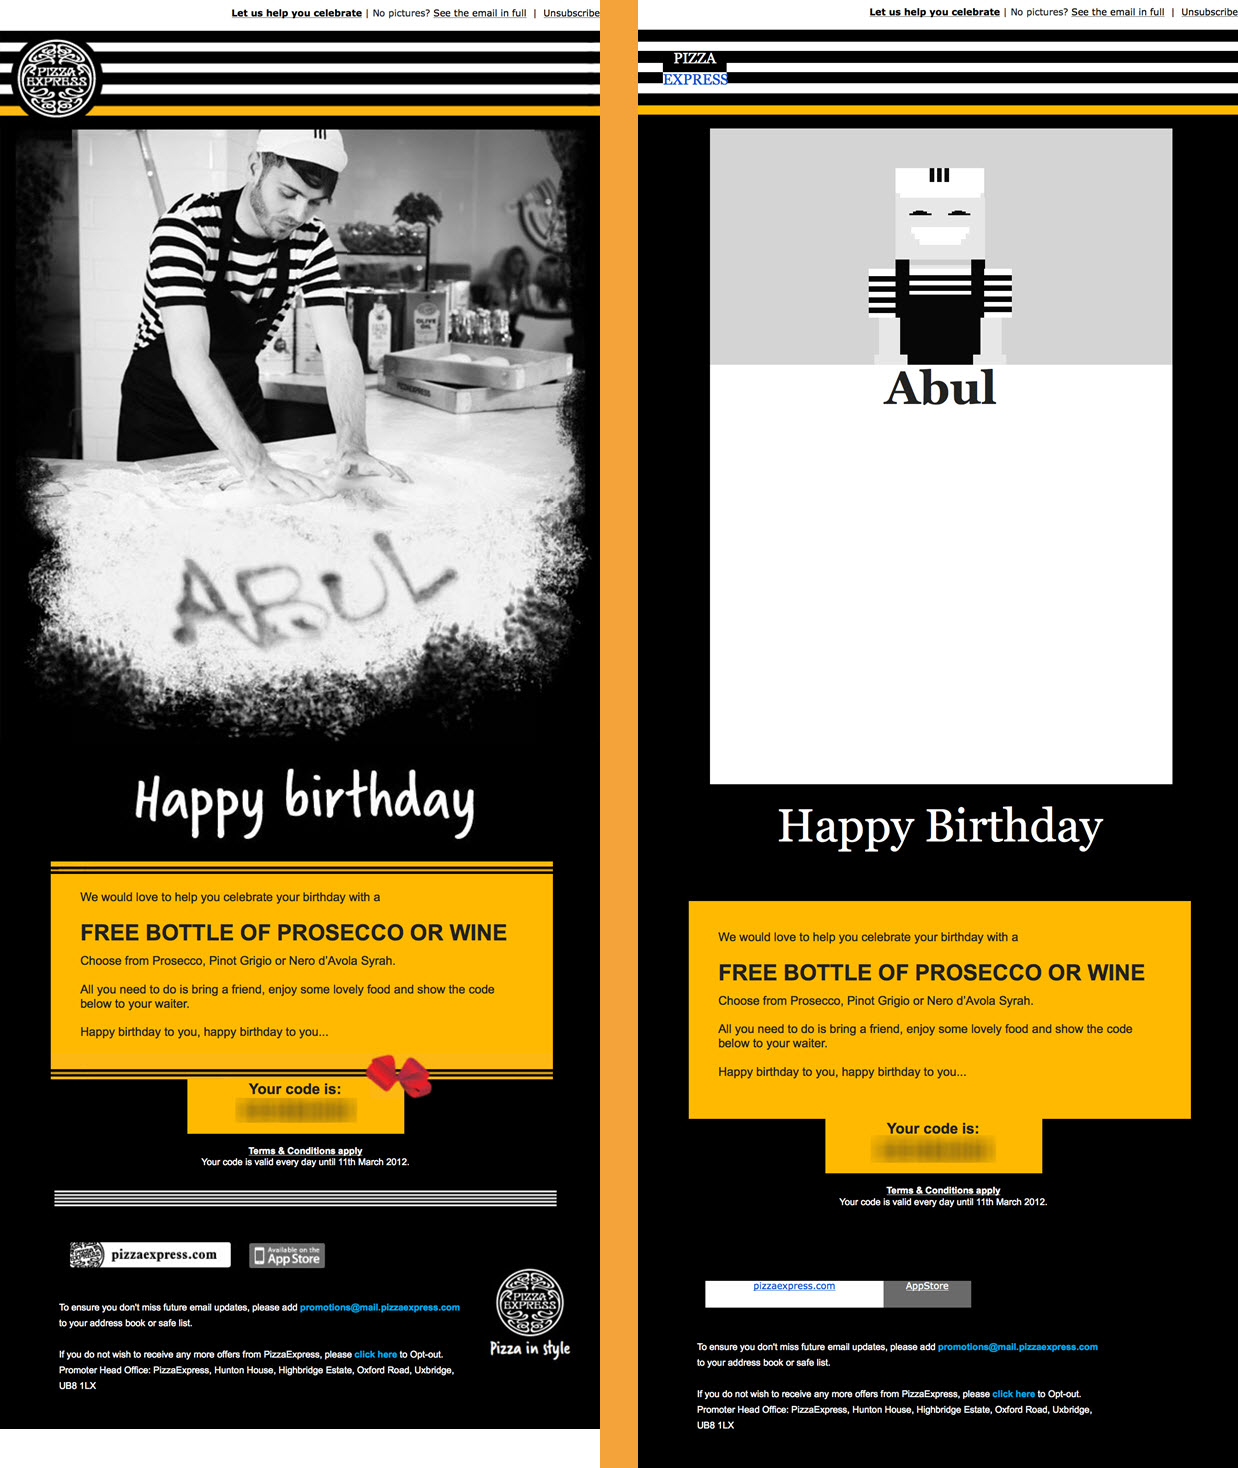 email pixel art in Pizza Express email